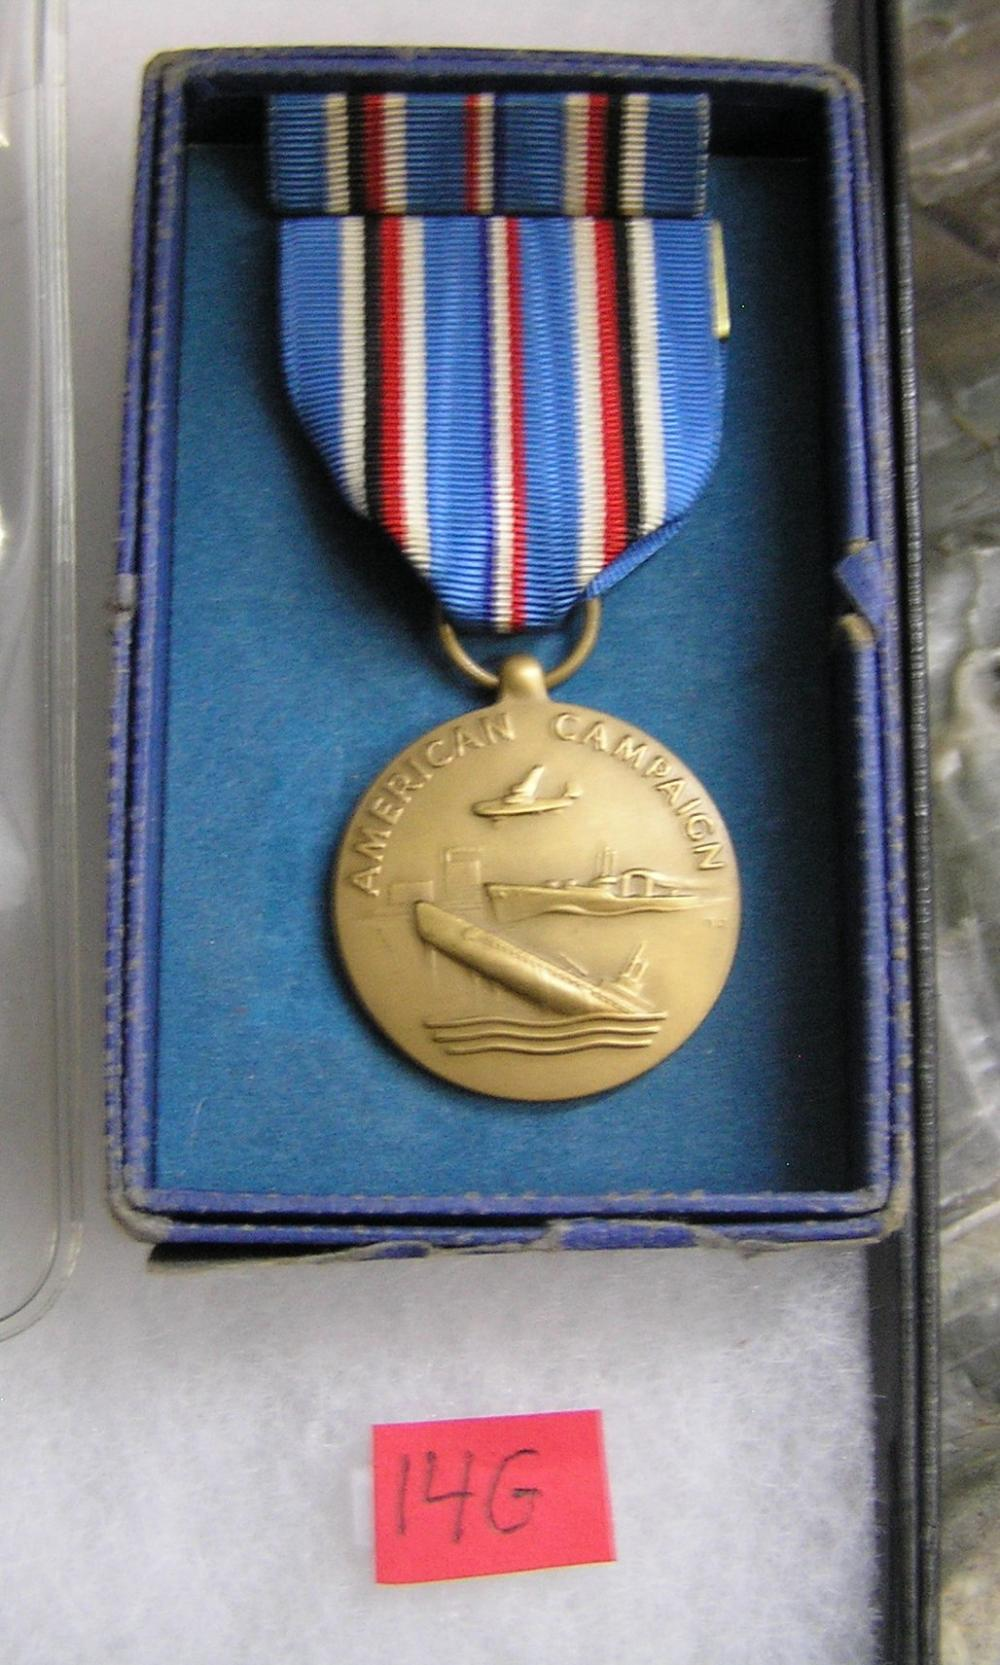 WWII American Campaign and service medal and bar